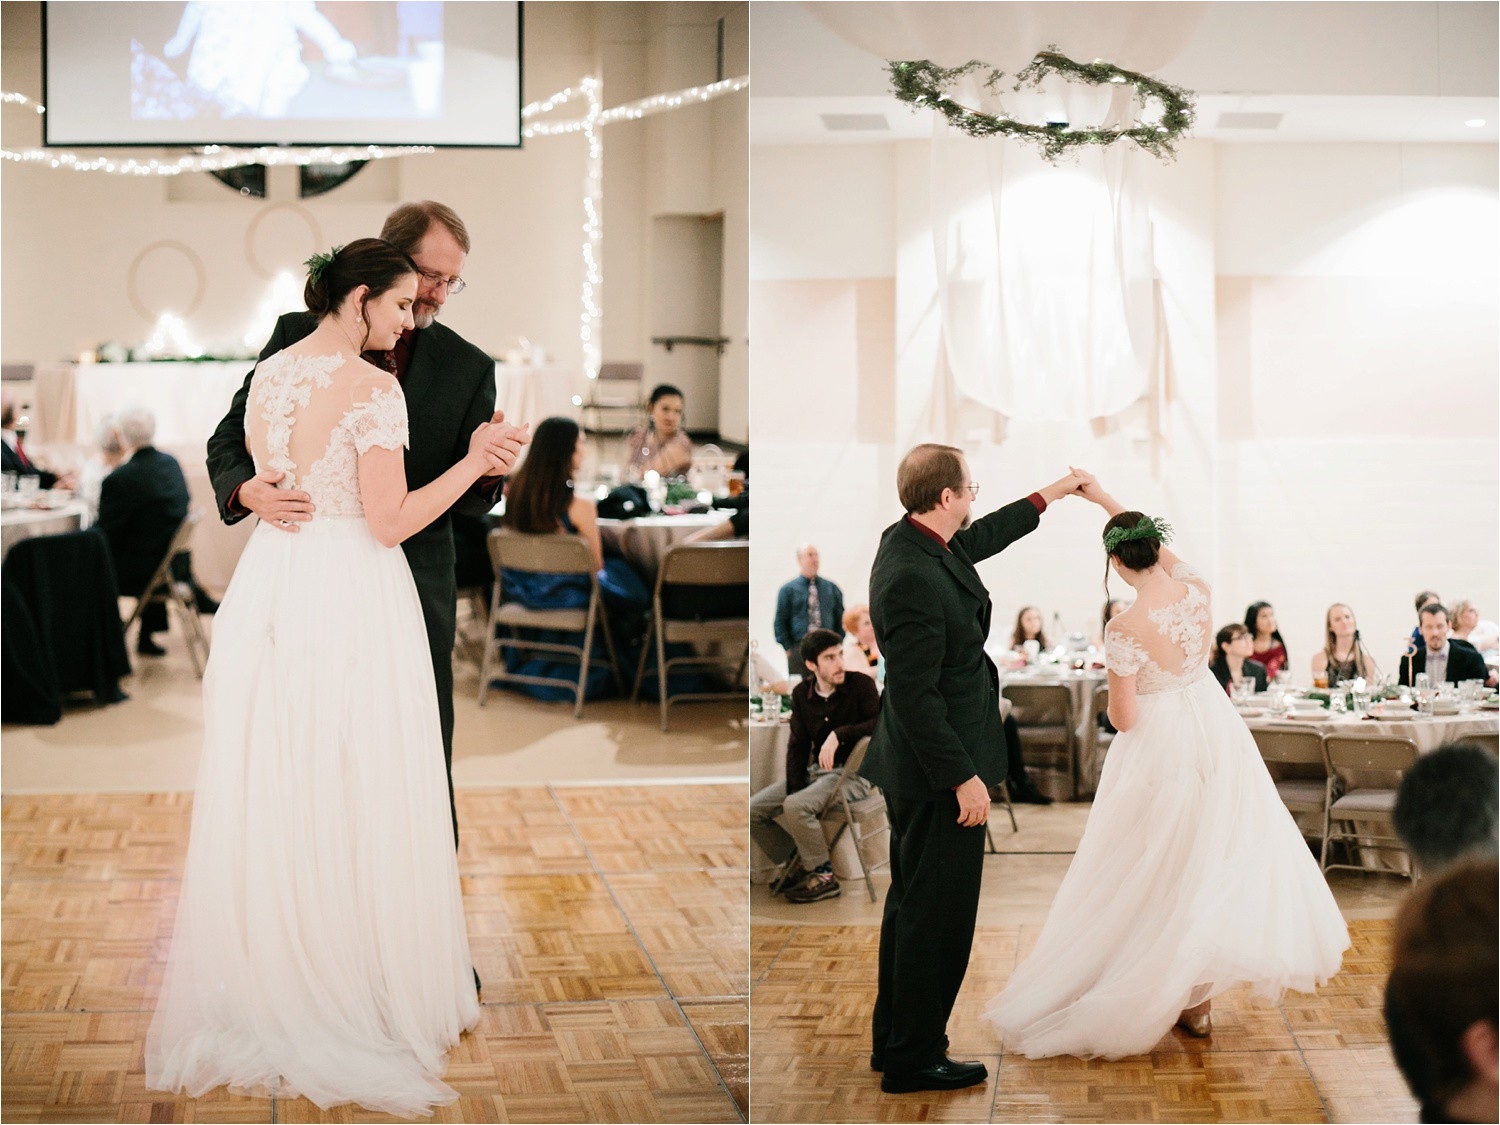 Alaina + Josh __ a wintertime wedding in Houston, TX with Christmas accents and a BHLDN dress by North Texas Wedding Photographer Rachel Meagan Photography _ 70